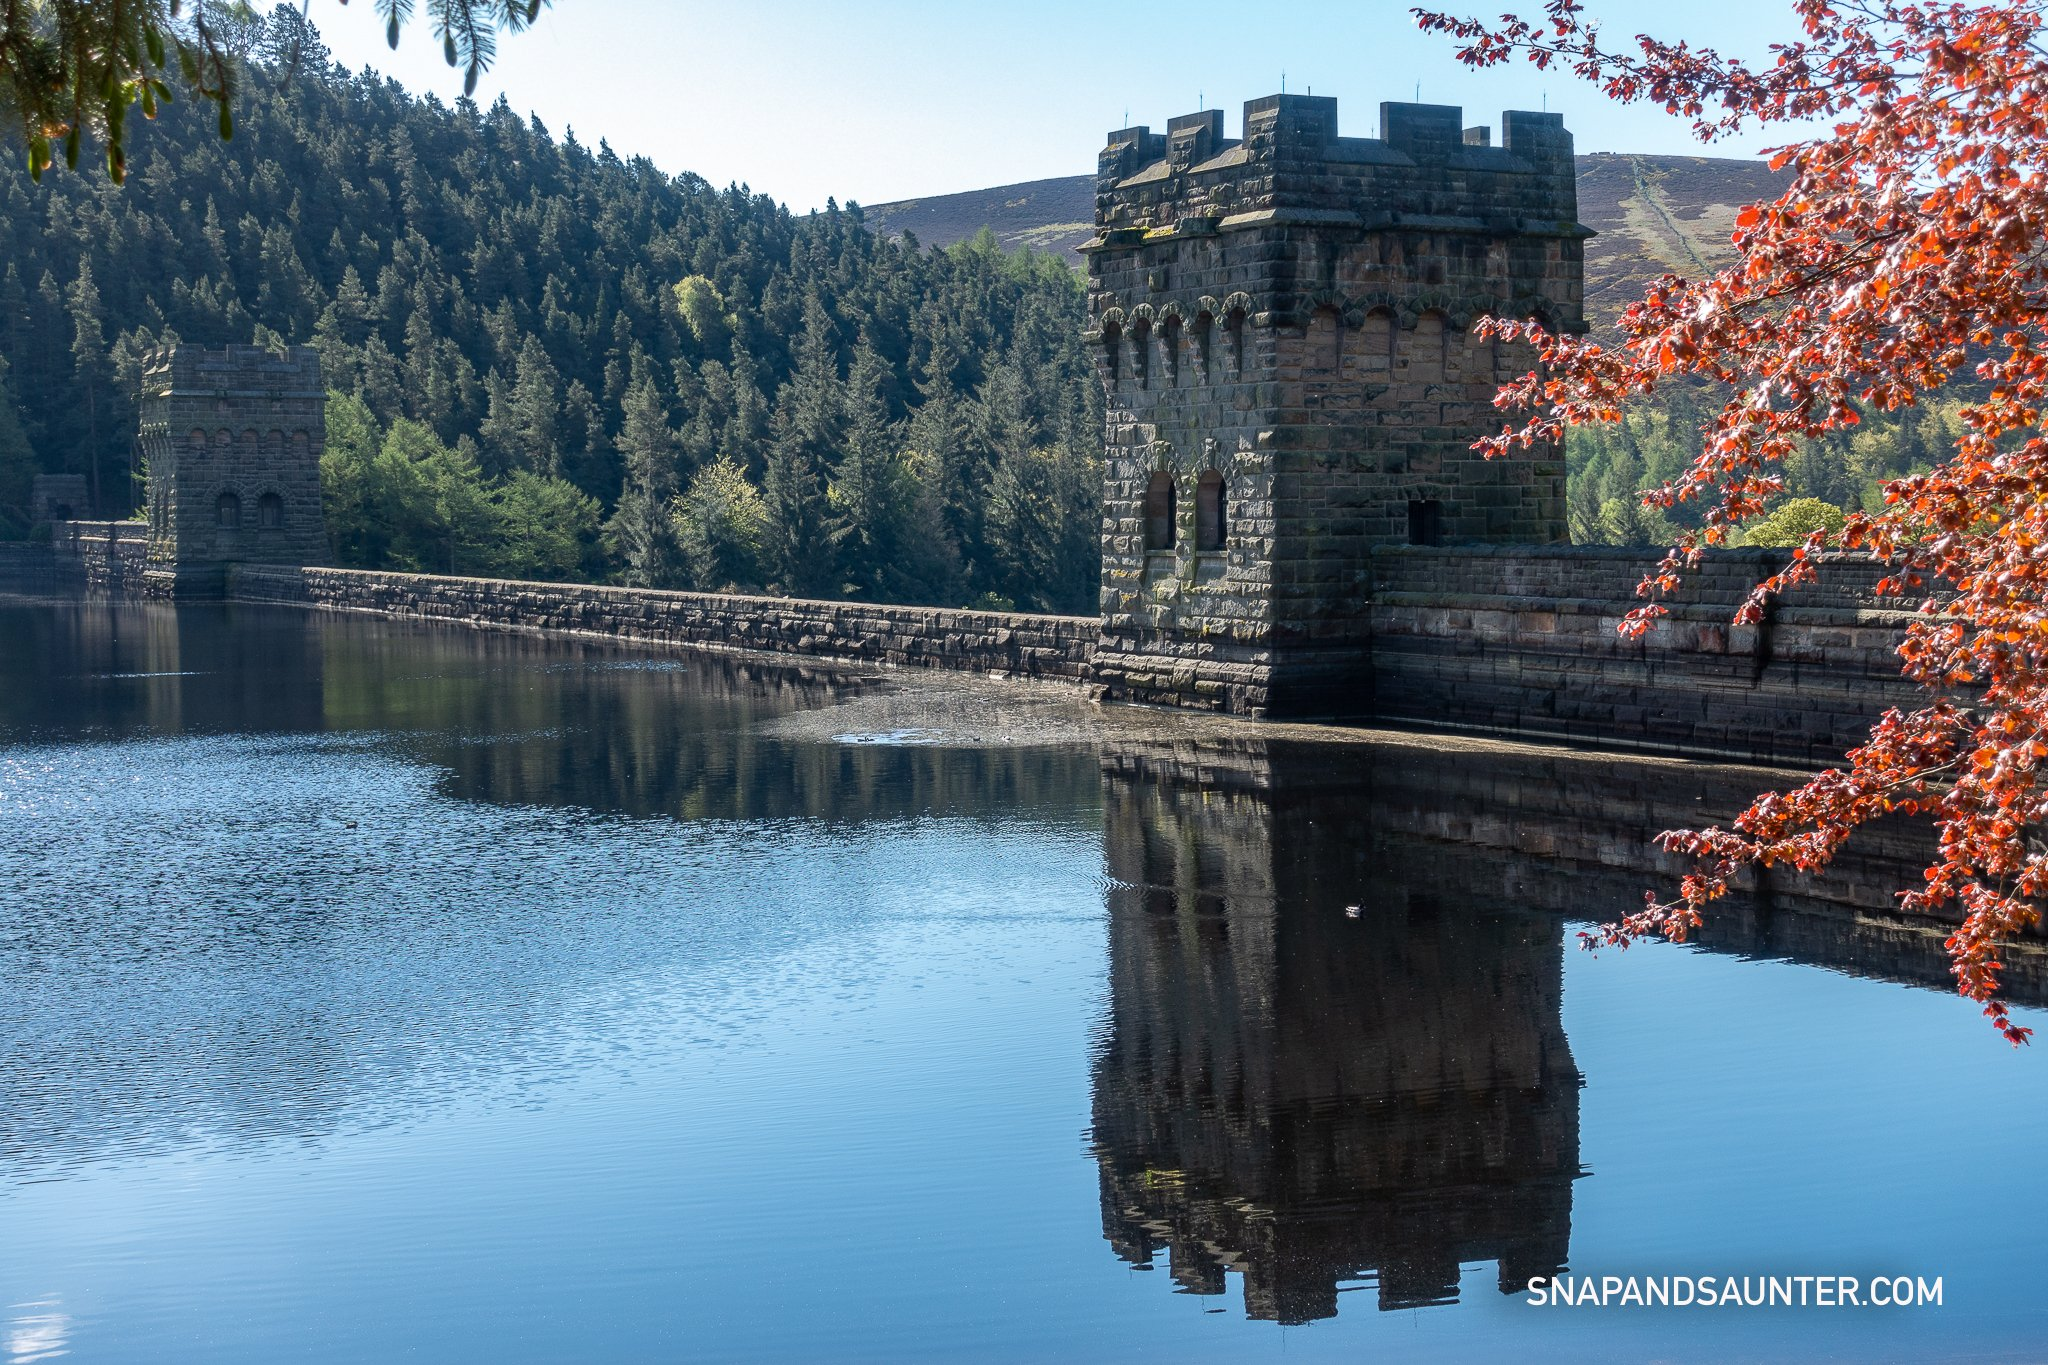 Reflection of Derwent towers in Upper Derwent Valley